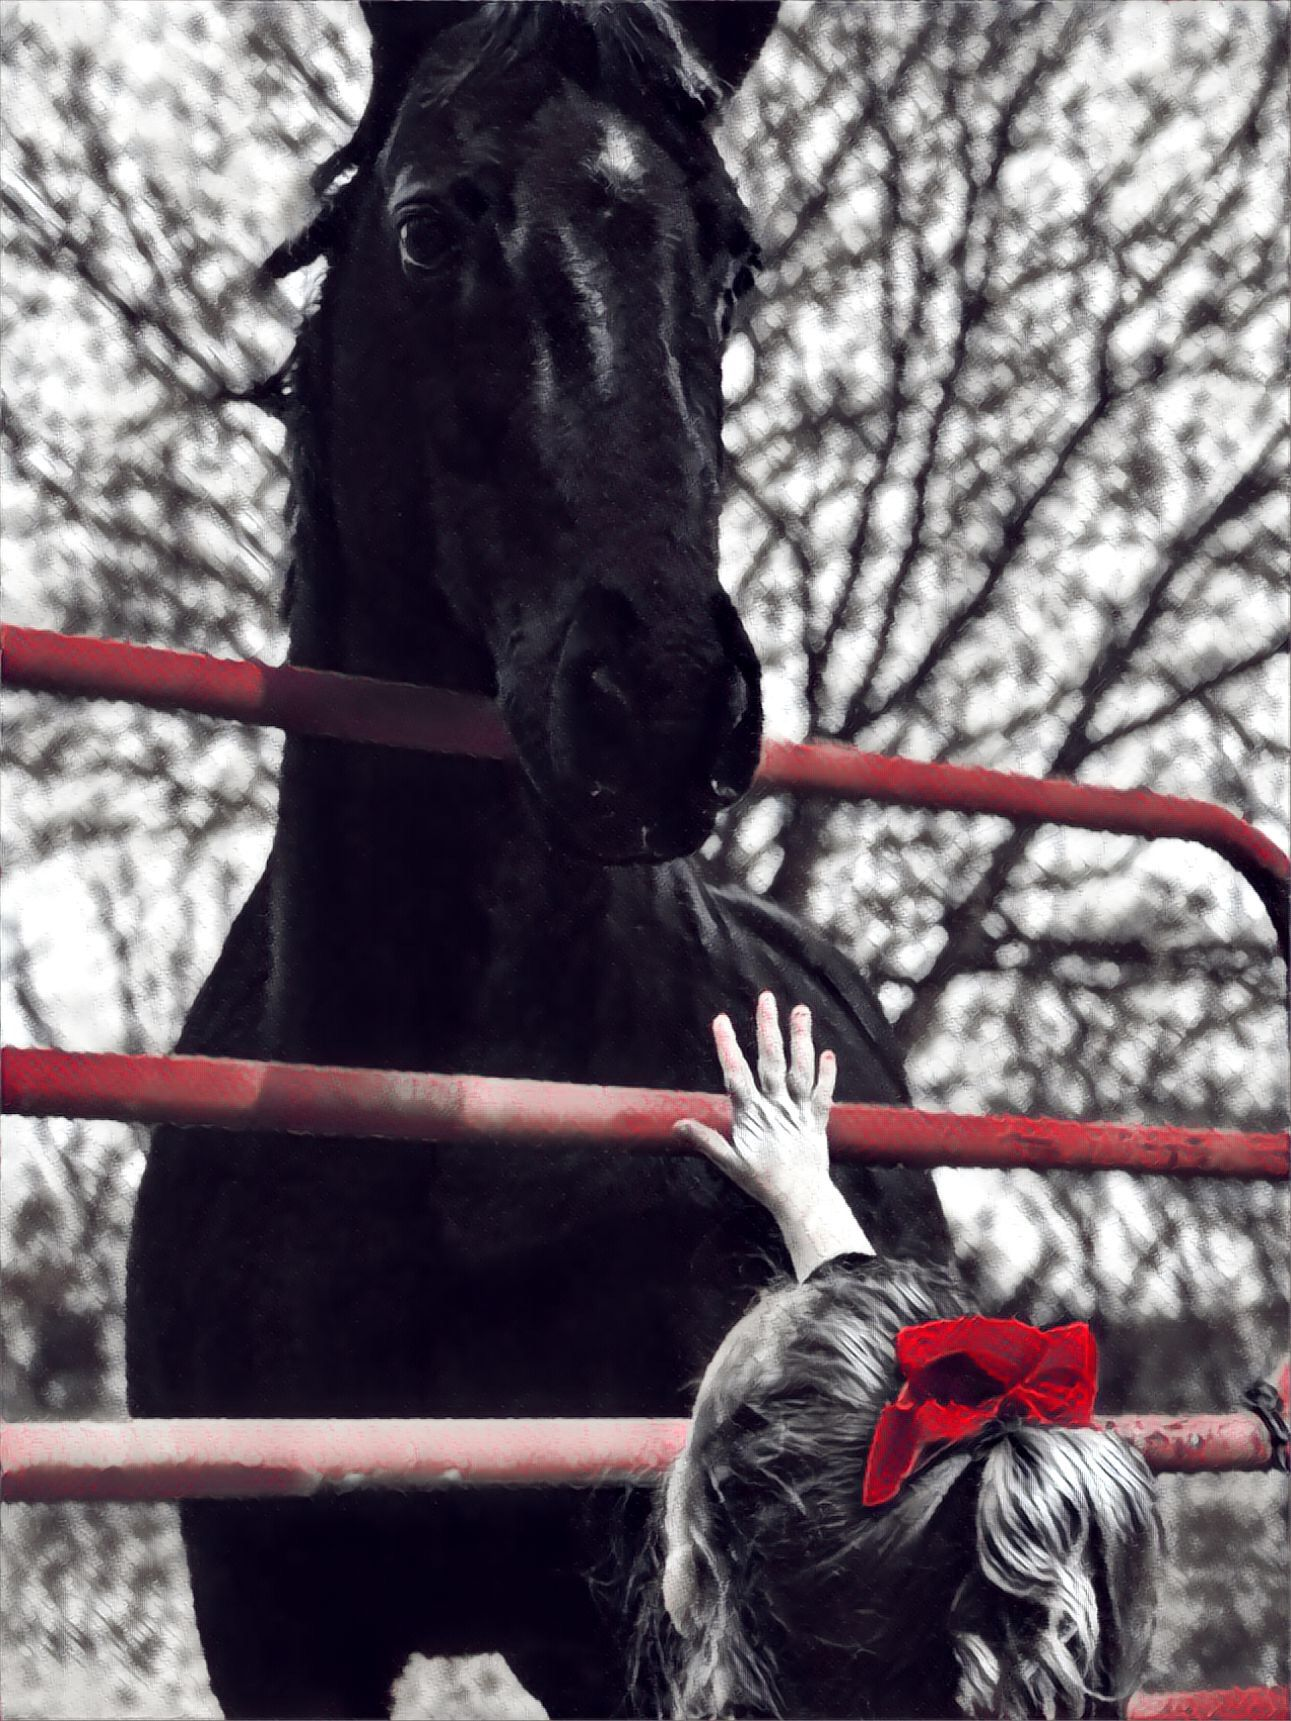 One of my favorites of my granddaughter and my horse